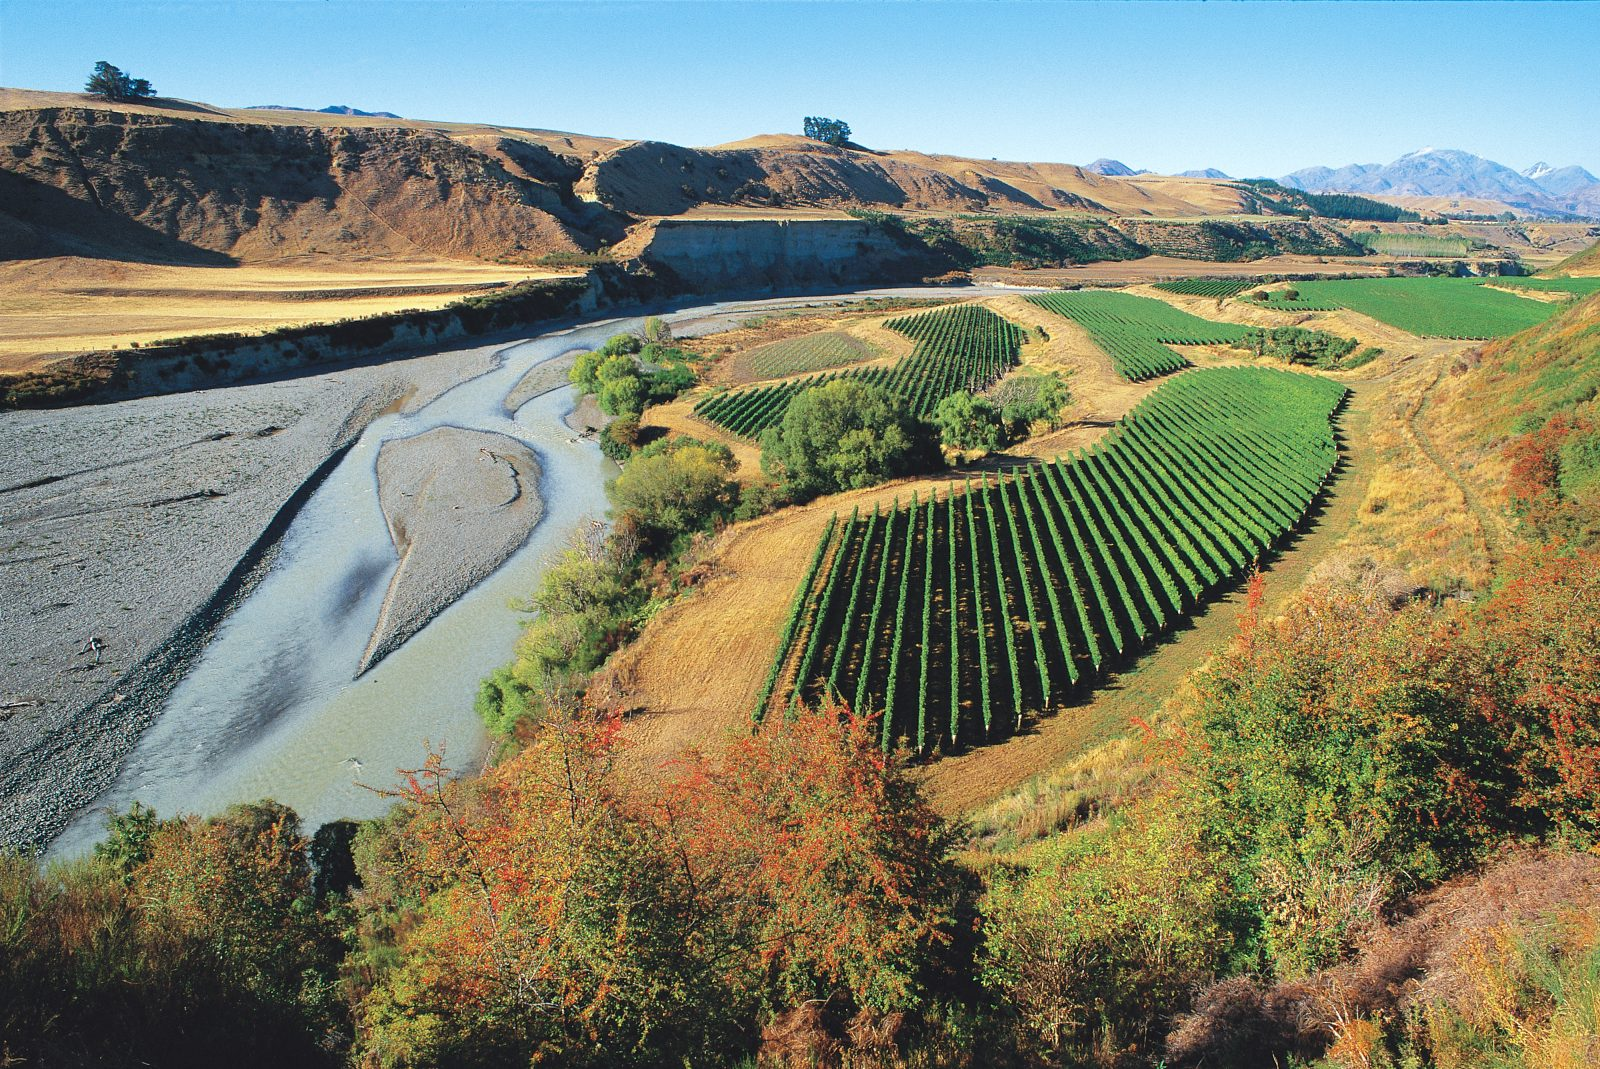 Not all land-based enterprises suffered during the dry summer. Grapevines, such as these in the Awatere valley, flourished in the arid conditions, and viticulturists had no disease worries. Birds, though, perhaps driven by a lack of other sources of moisture and food, mounted a particularly determined assault on the 1998 crop.